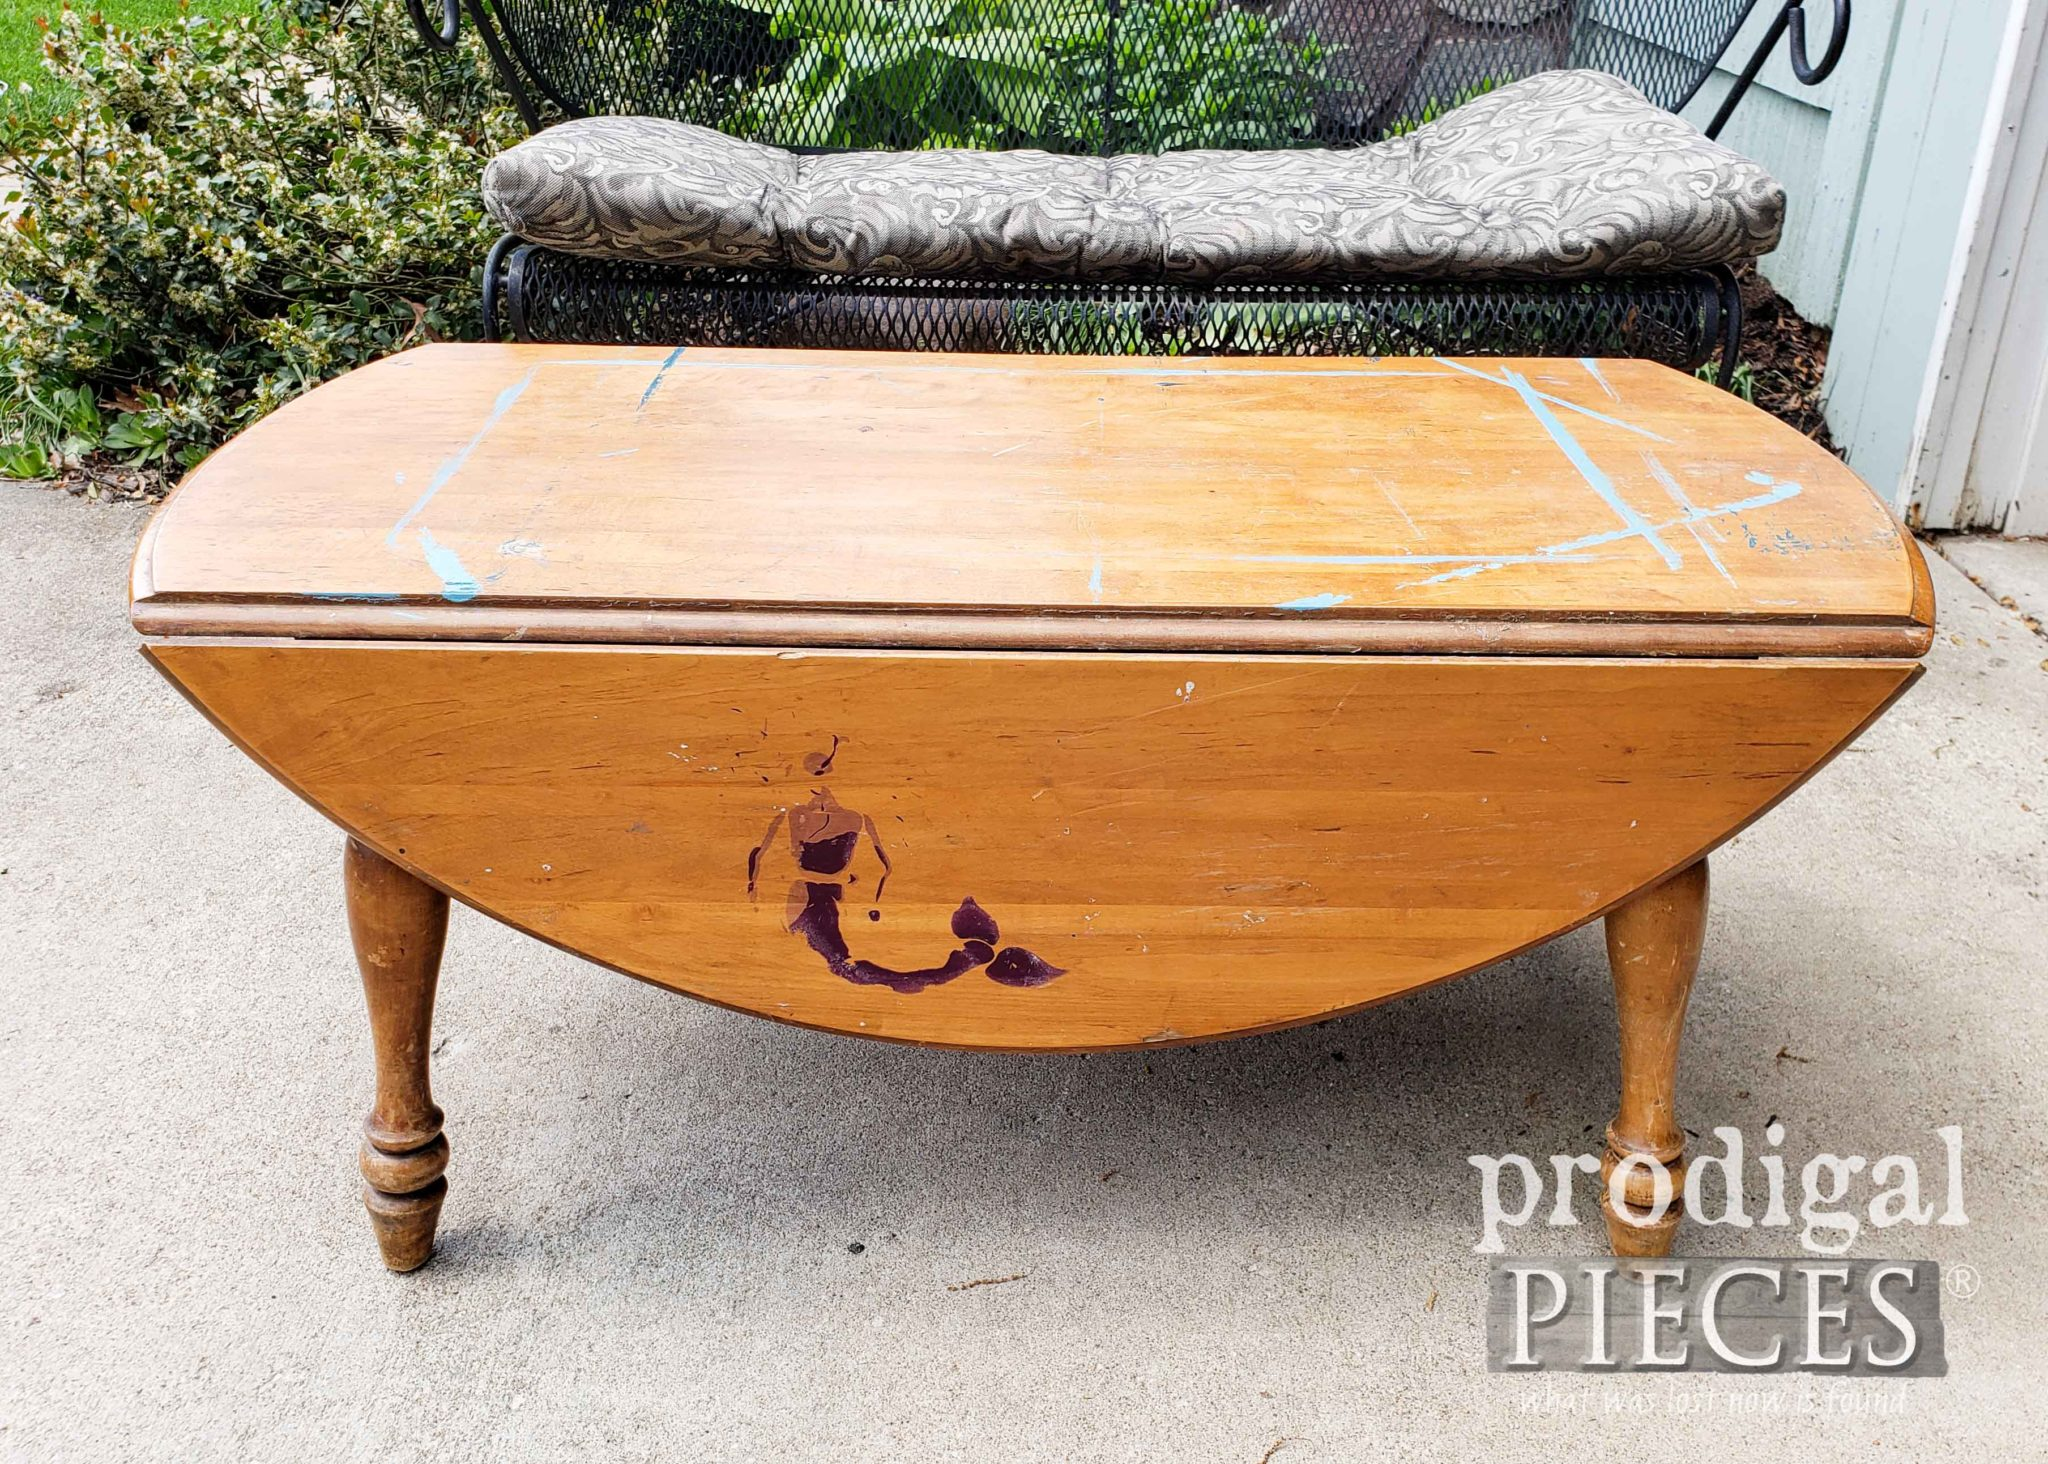 Vintage Drop-Leaf Table Found Curbside by Prodigal Pieces | prodigalpieces.com #prodigalpieces